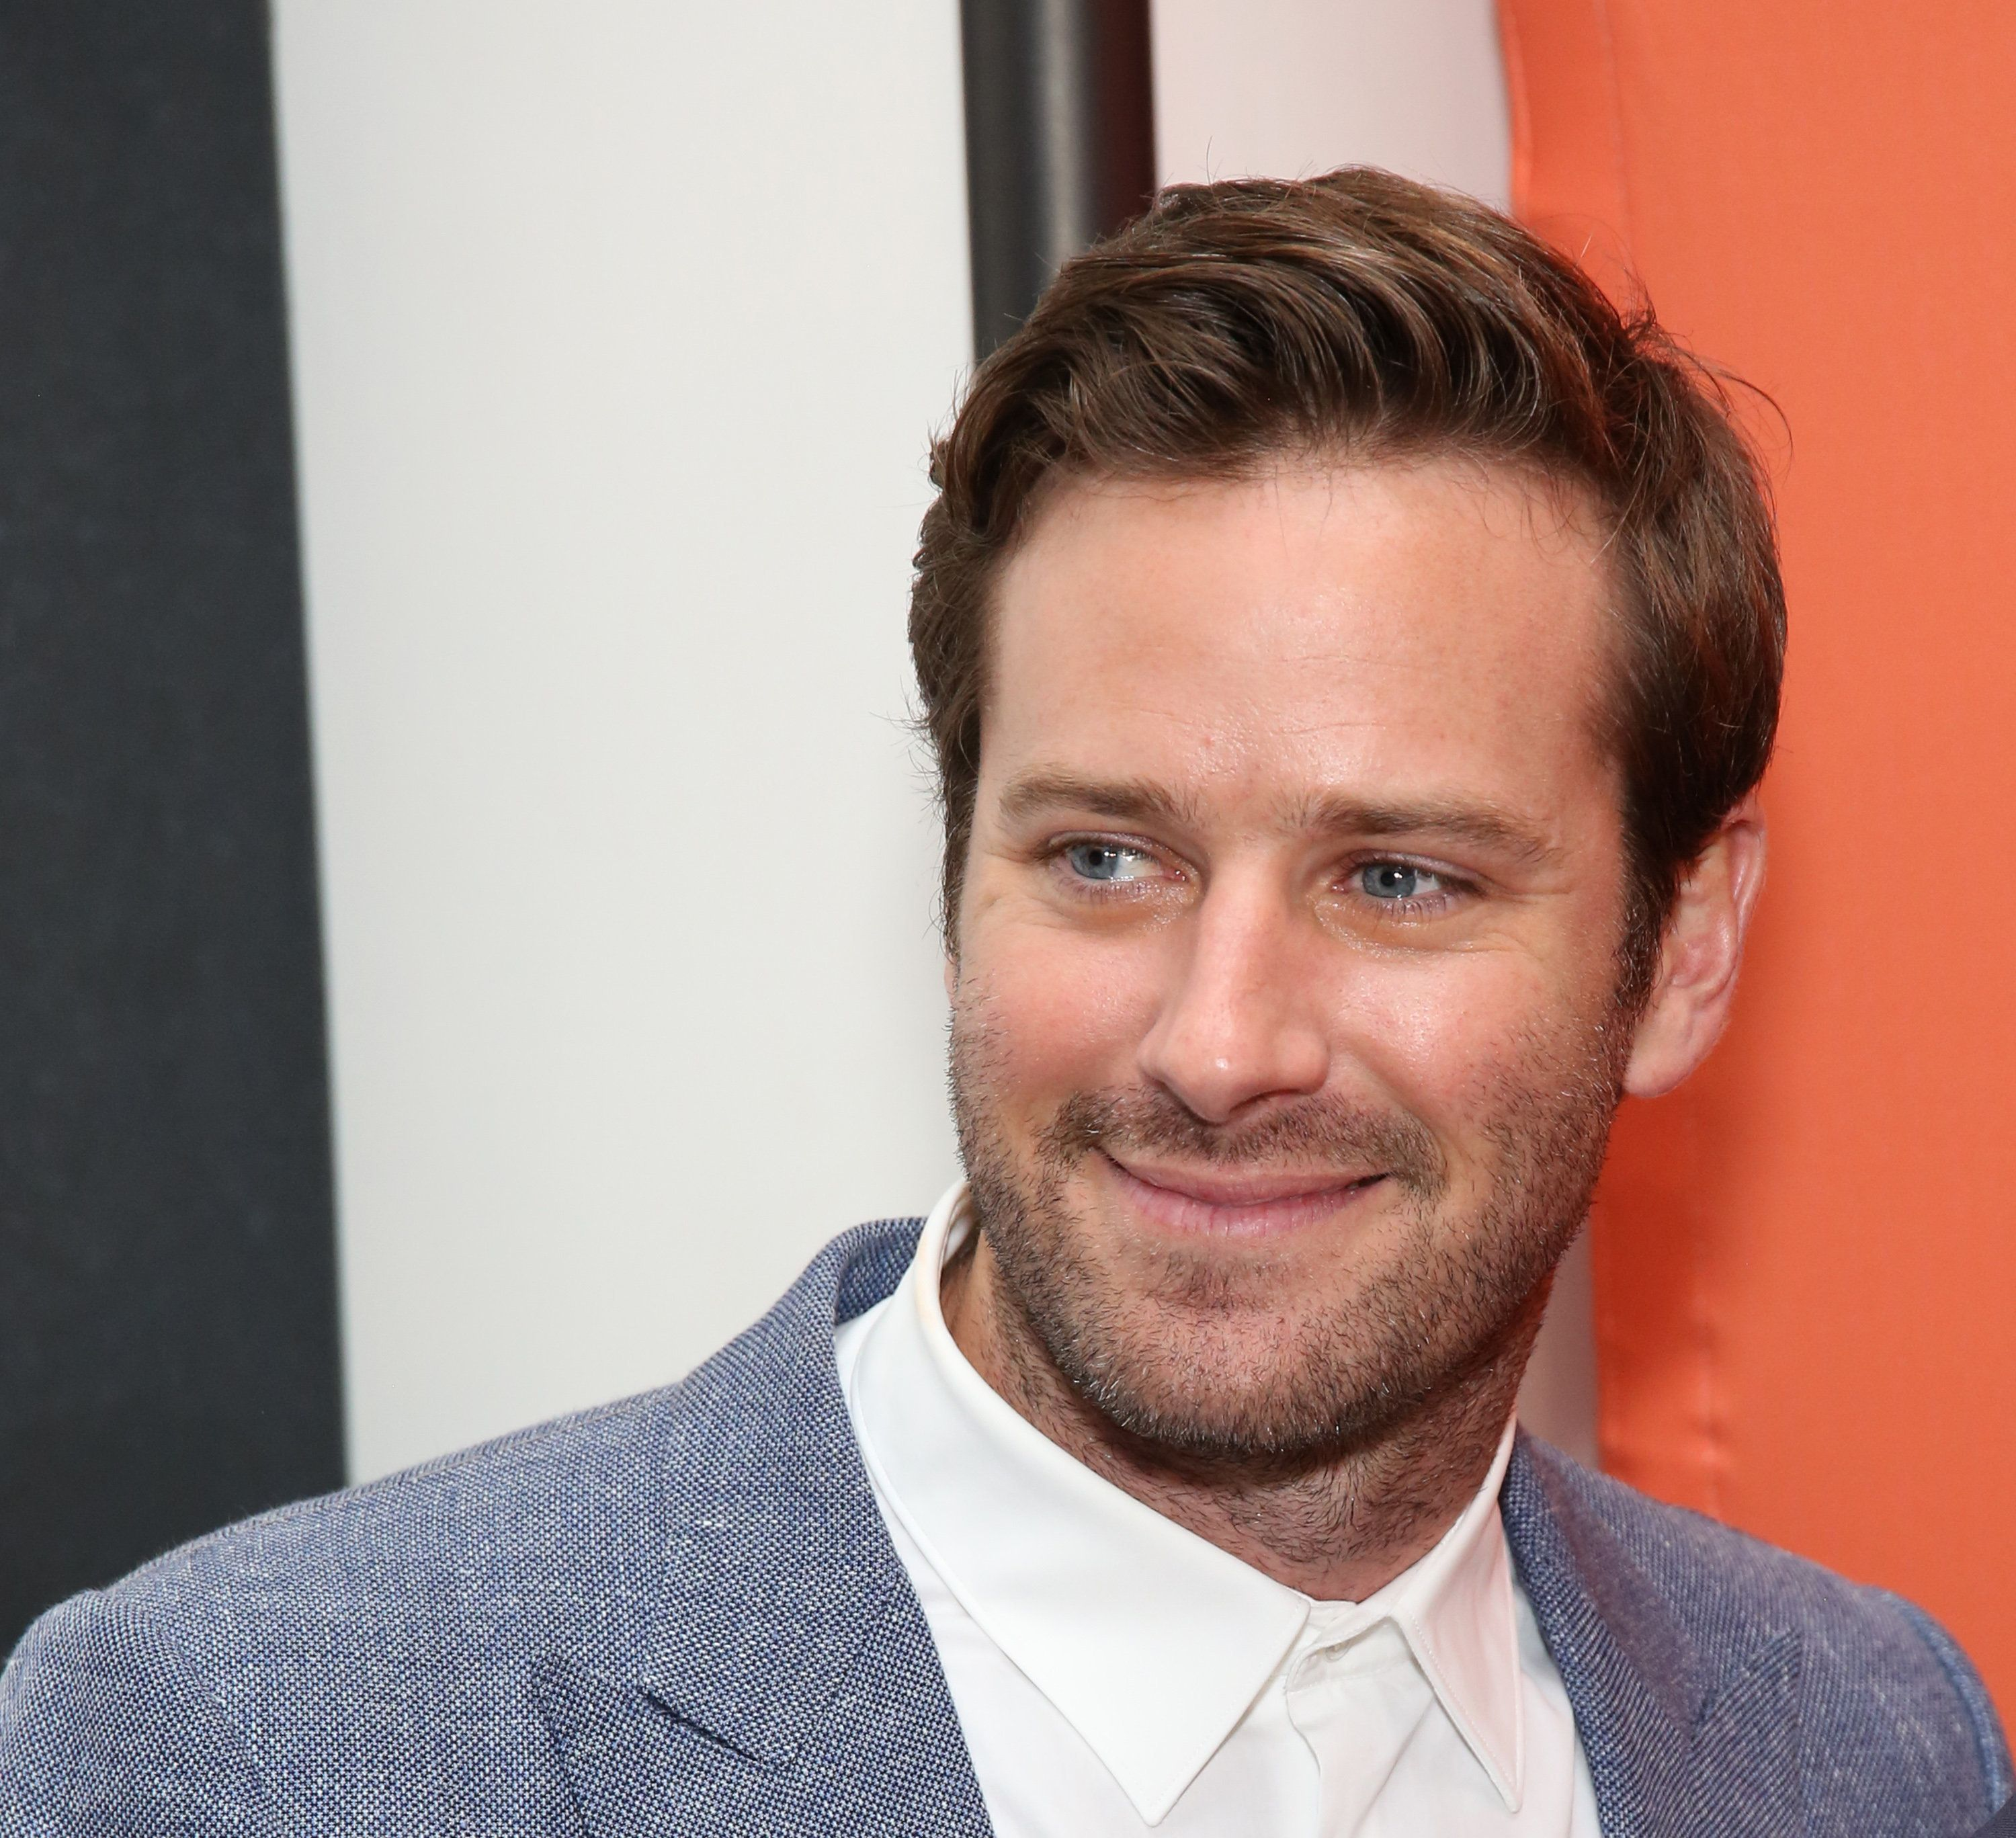 NEW YORK, NY - JULY 23:  Armie Hammer attends the Broadway Opening Night after party for 'Straight White Men' Broadway Opening Night at DaDong on July 23, 2018 in New York Cit  (Photo by Walter McBride/WireImage)